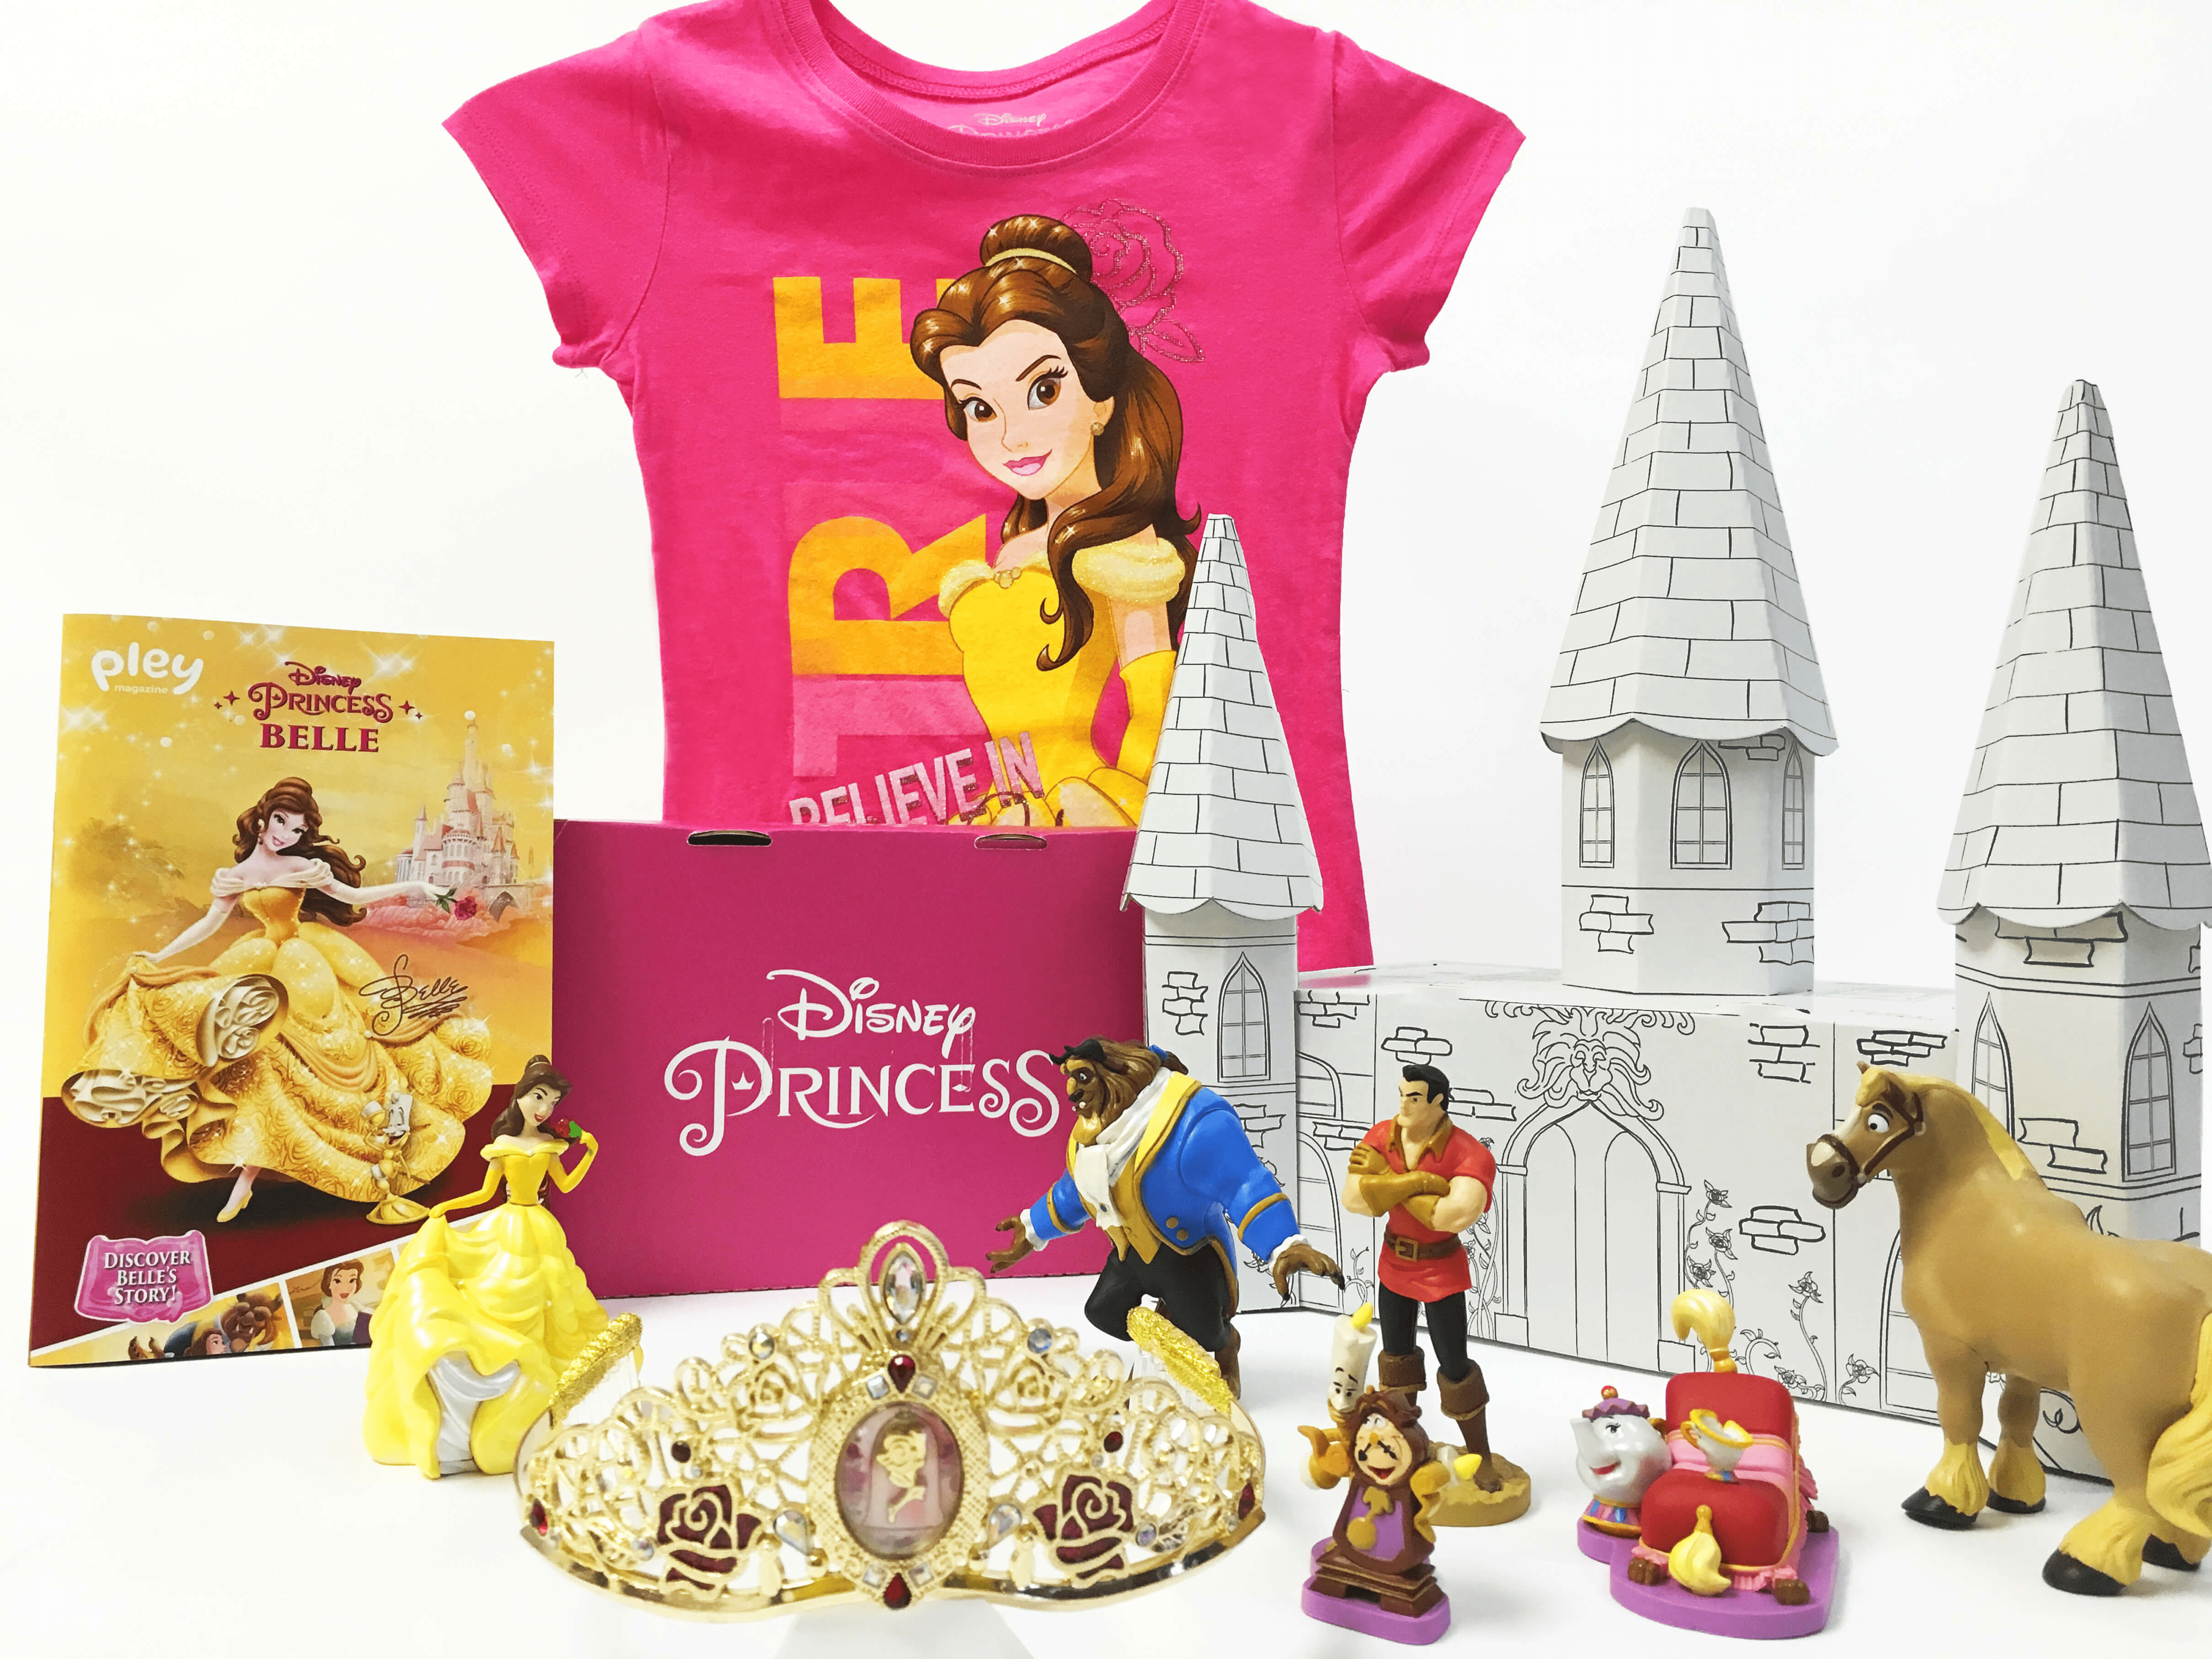 Disney Princess PleyBox Black Friday Coupon Code – First Box $10!